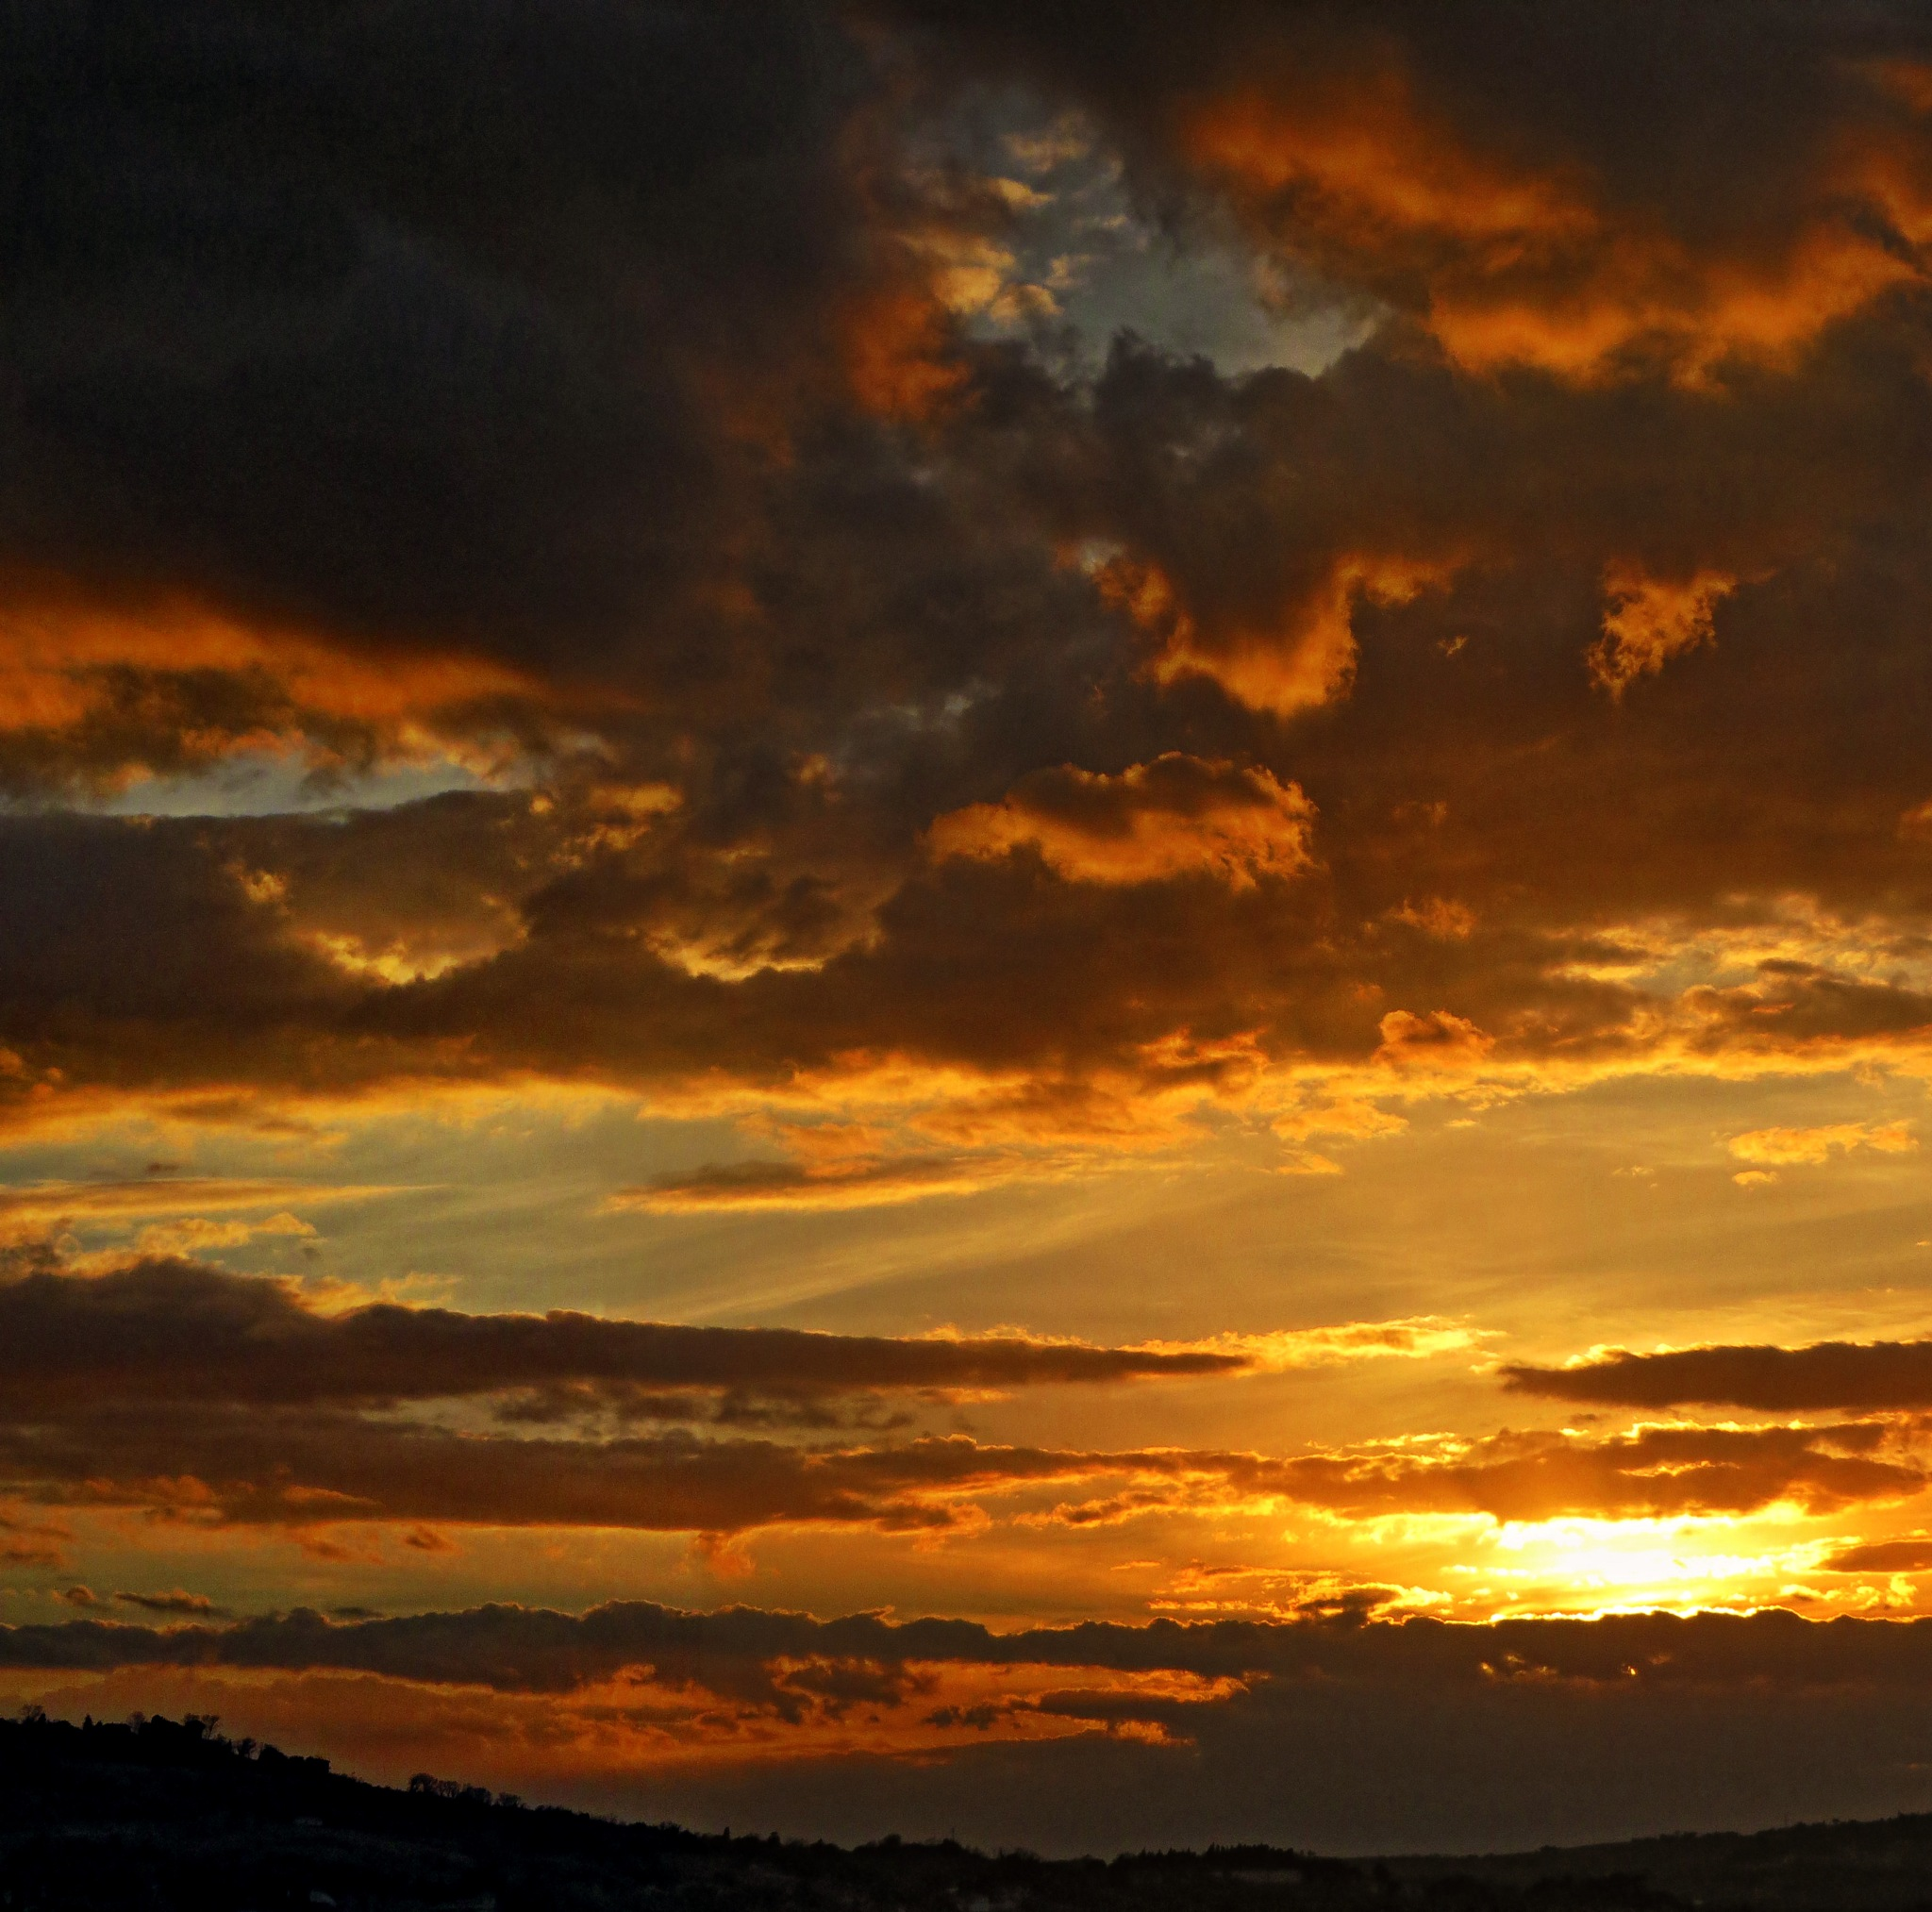 Ancona, Marche, Italy - Sunset in the clouds 2 by Gianni Del Bufalo CC BY-NC-SA by gianni del bufalo